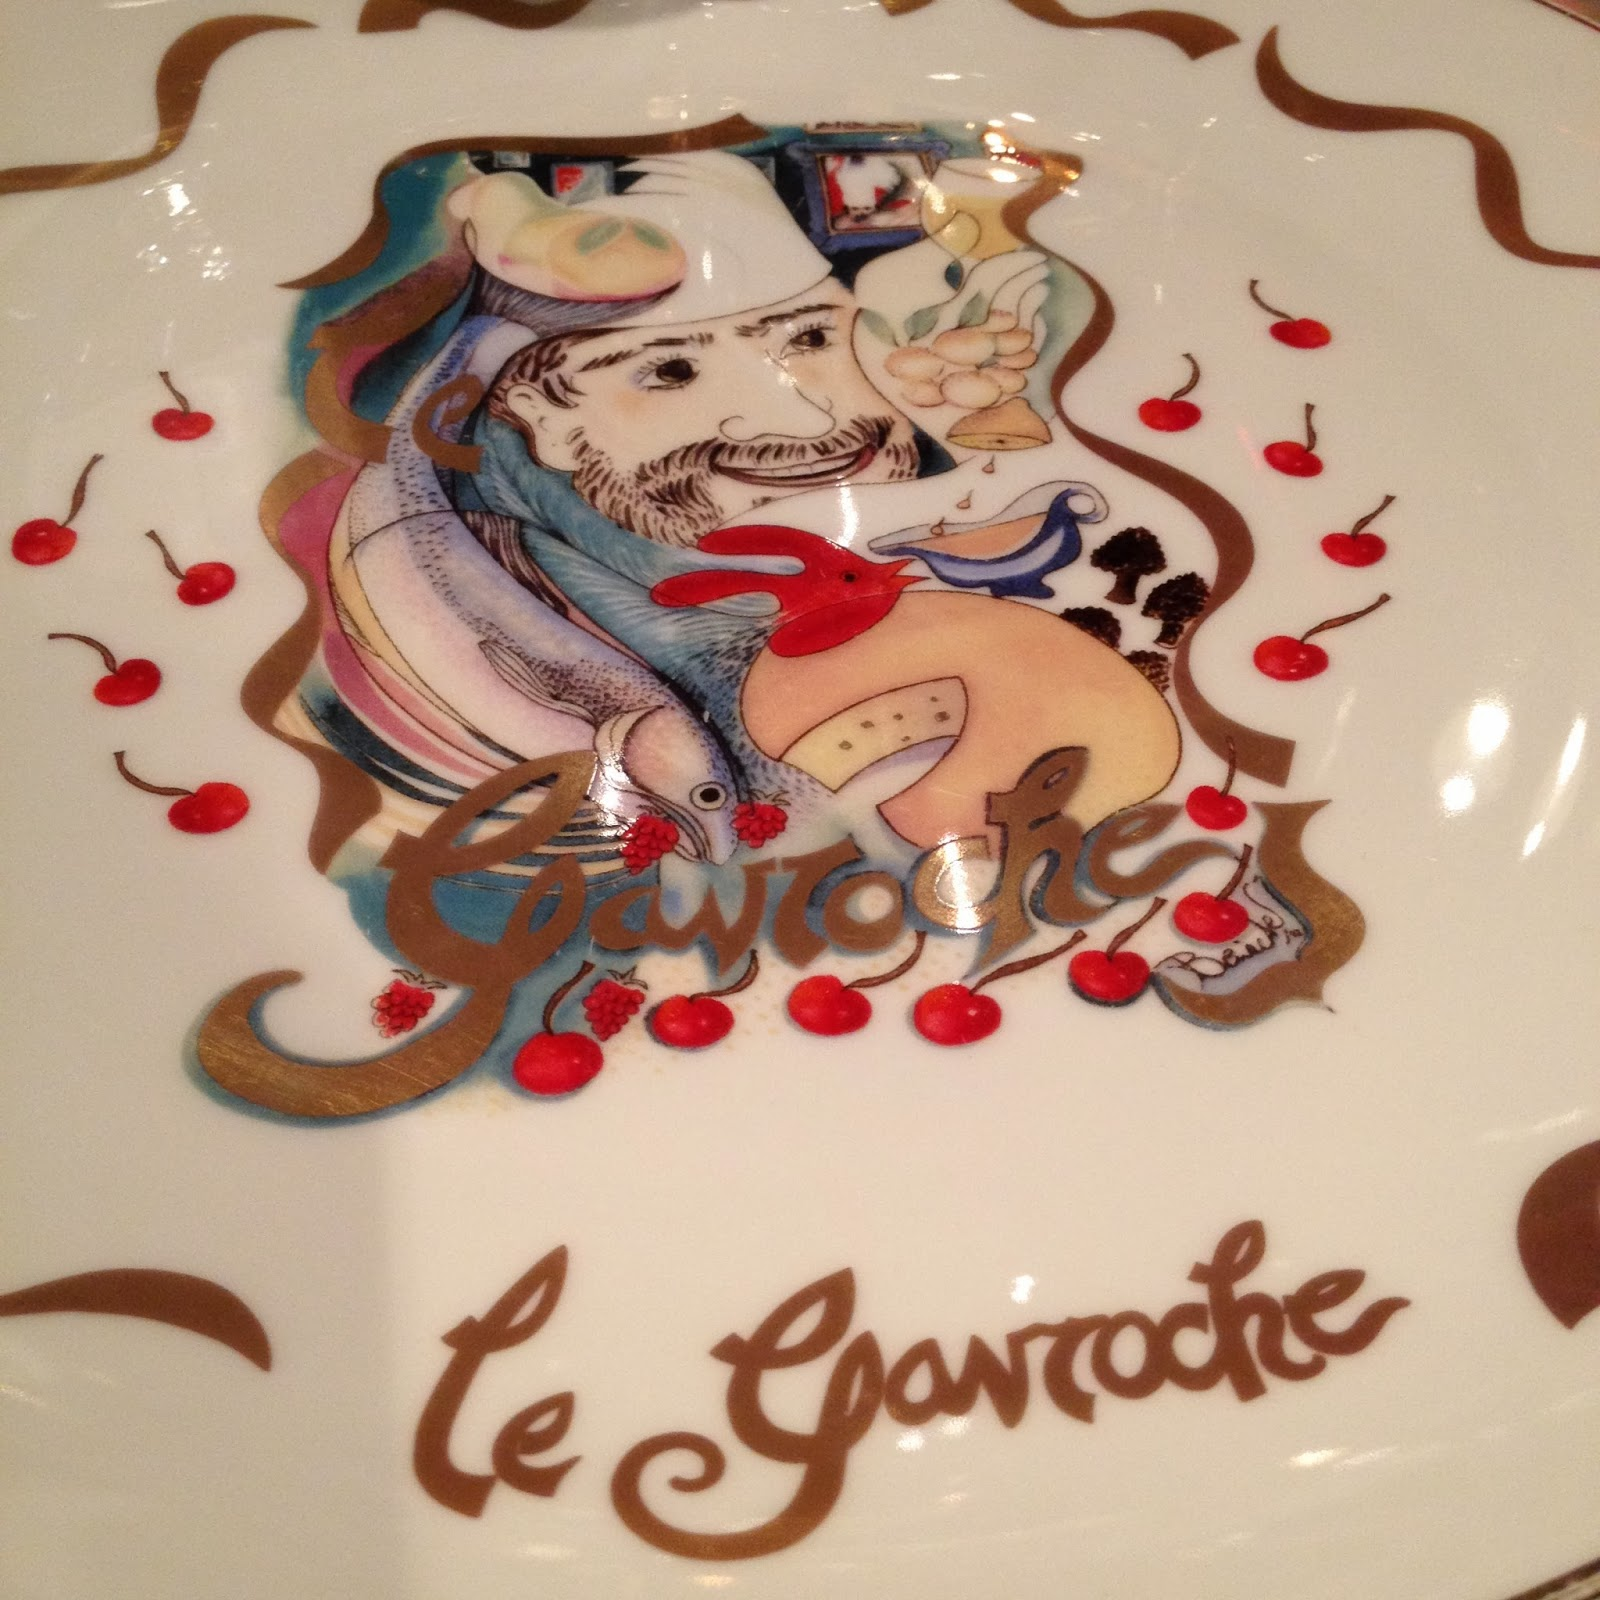 duvel & le gavroche – beer and food pairing made in heaven!